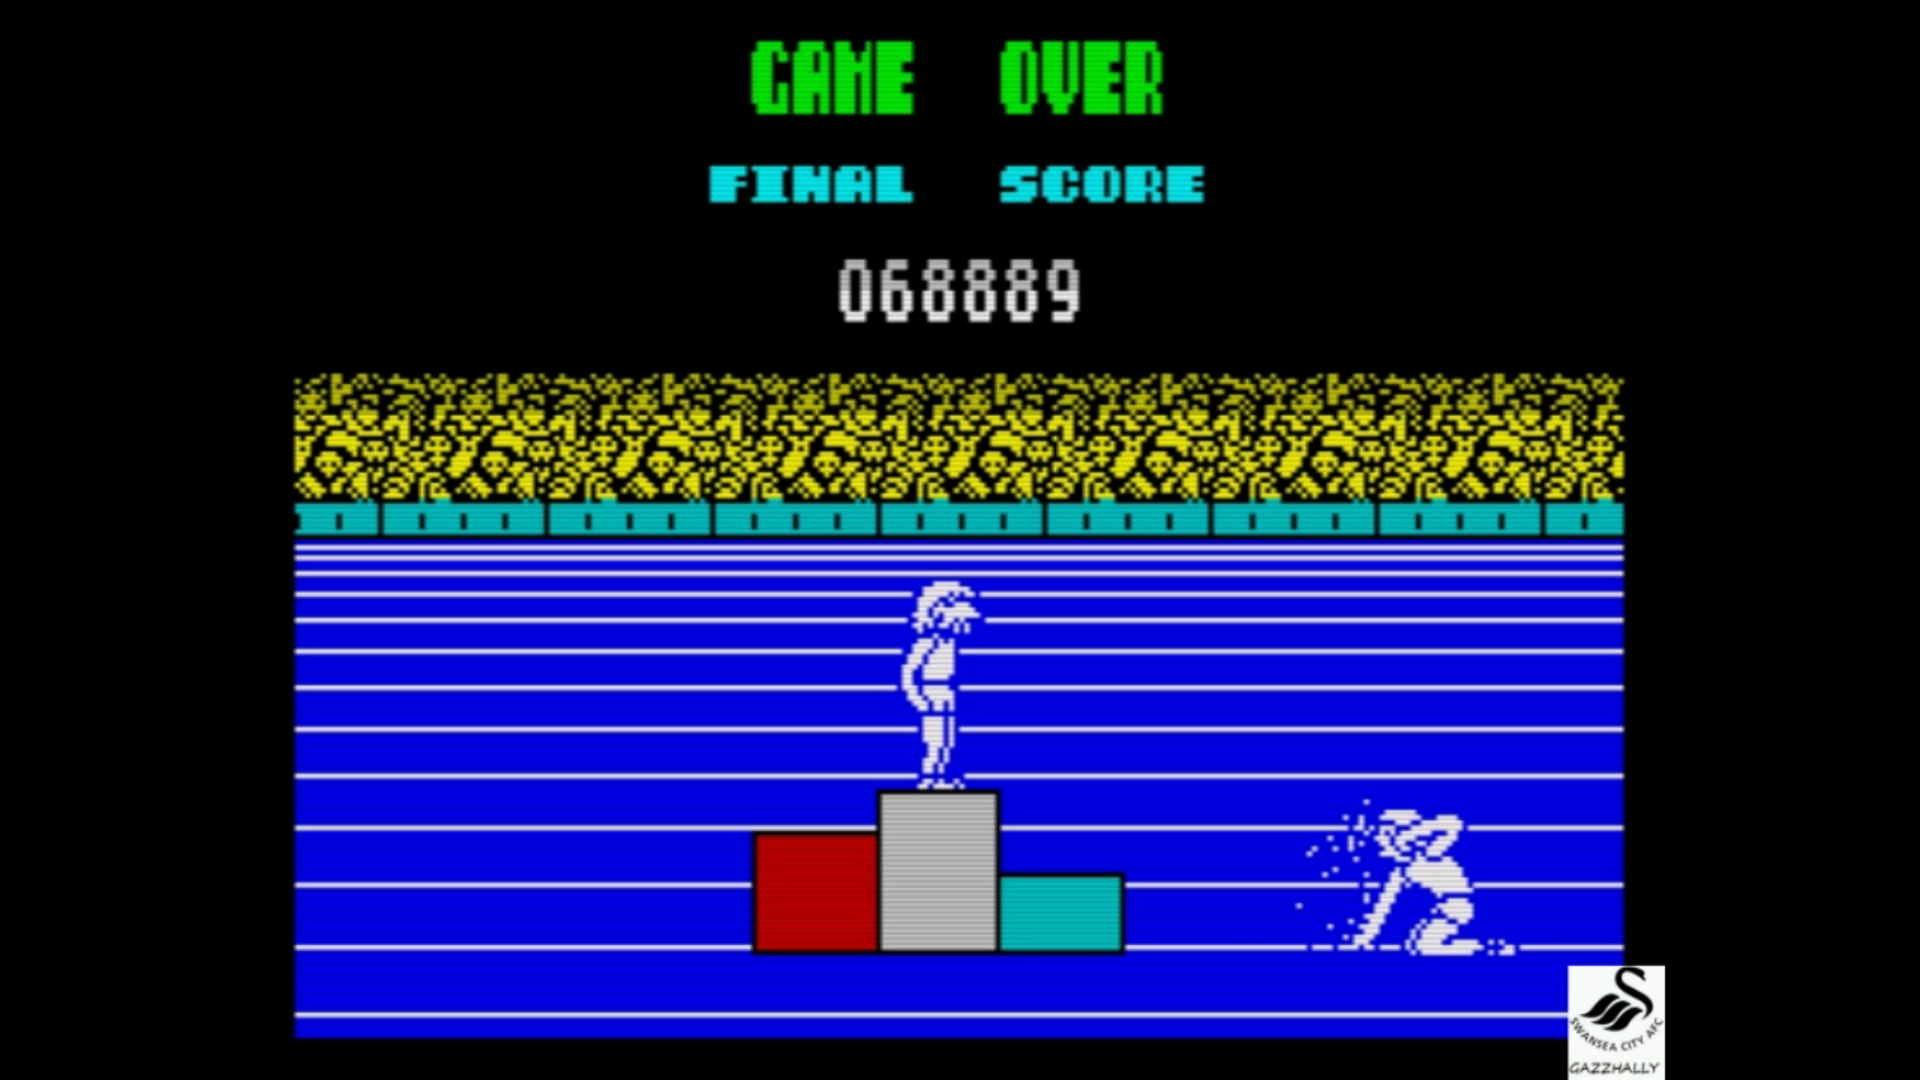 gazzhally: Daley Thompson